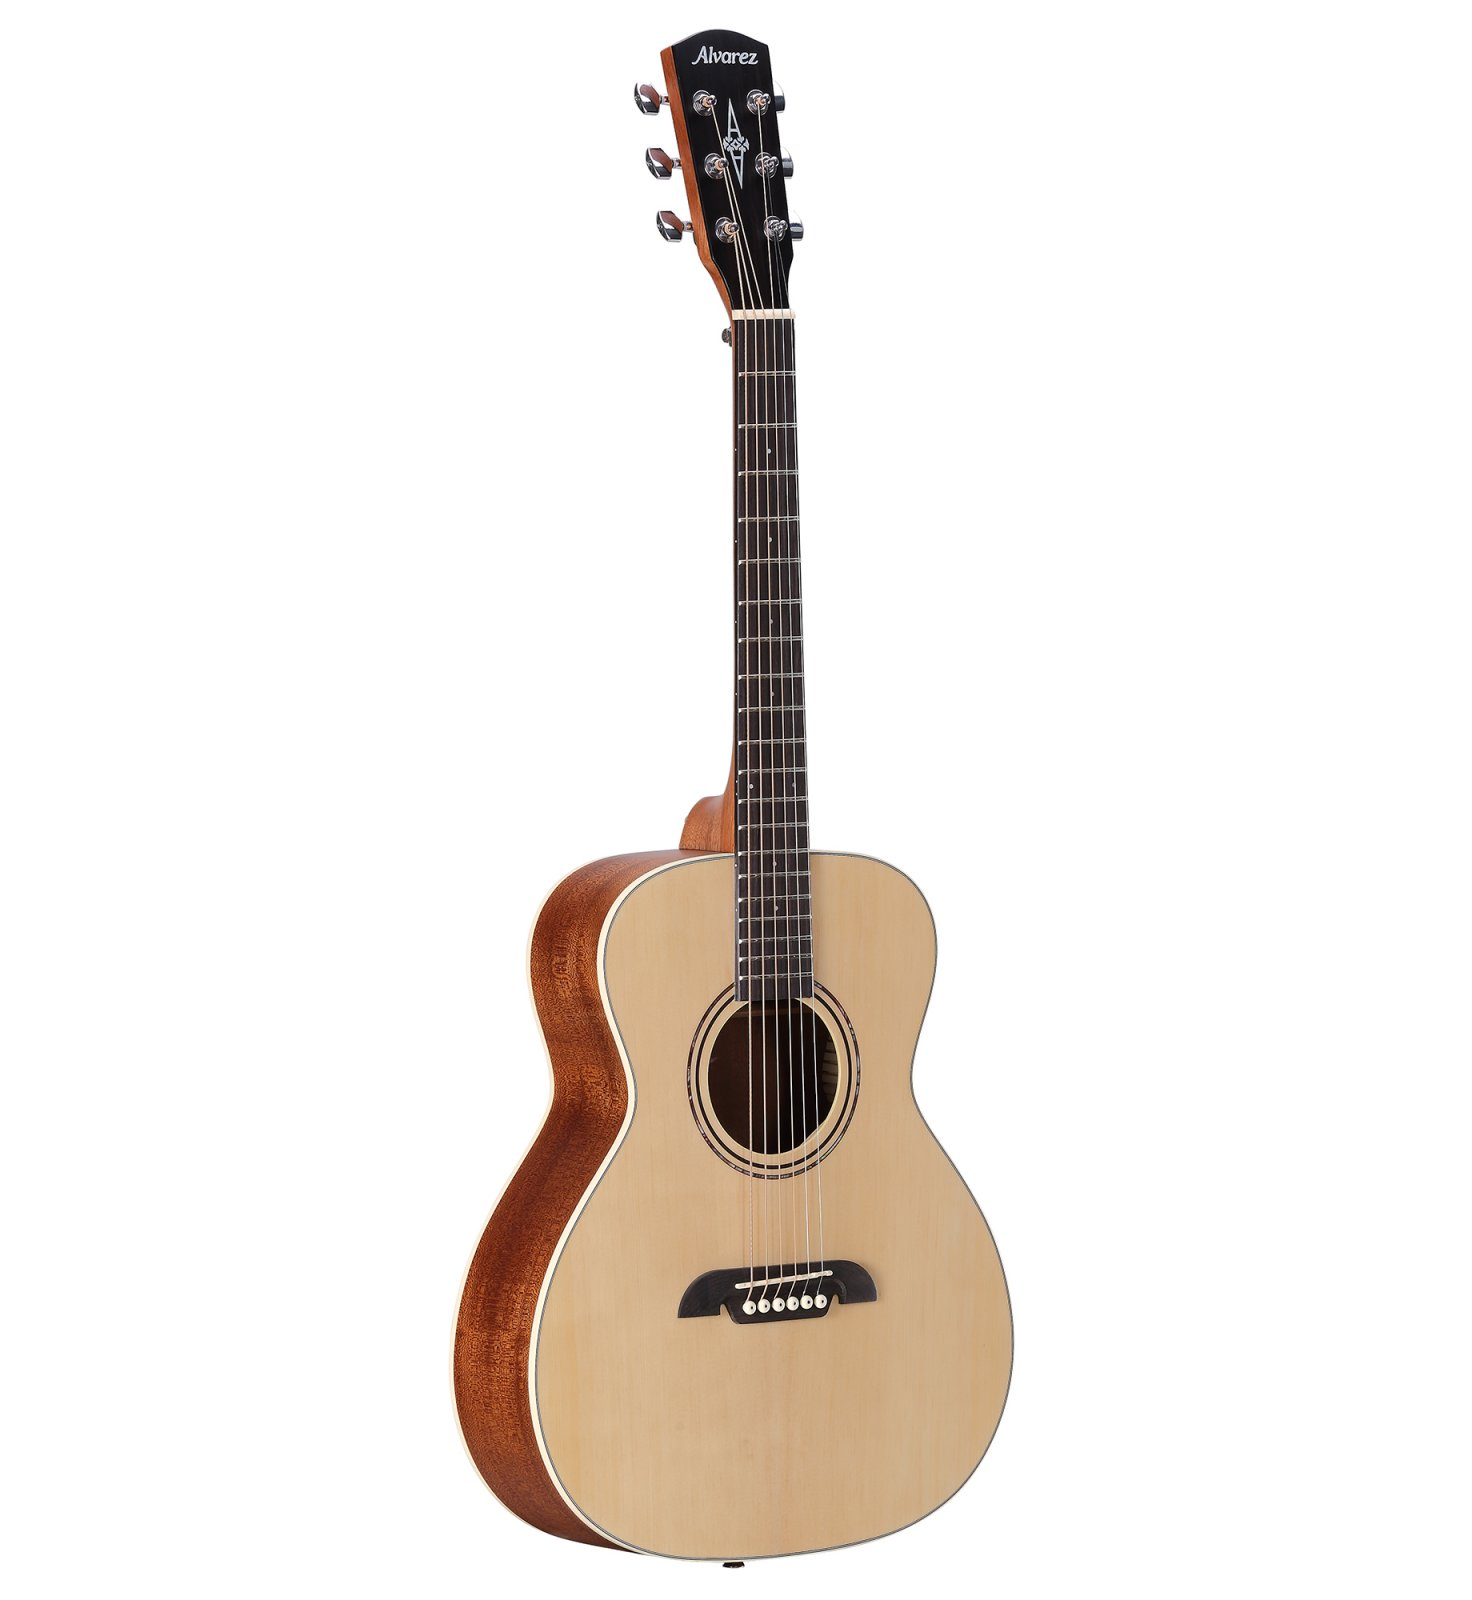 Alvarez RS26 Student Steel String Acoustic Guitar with Gigbag